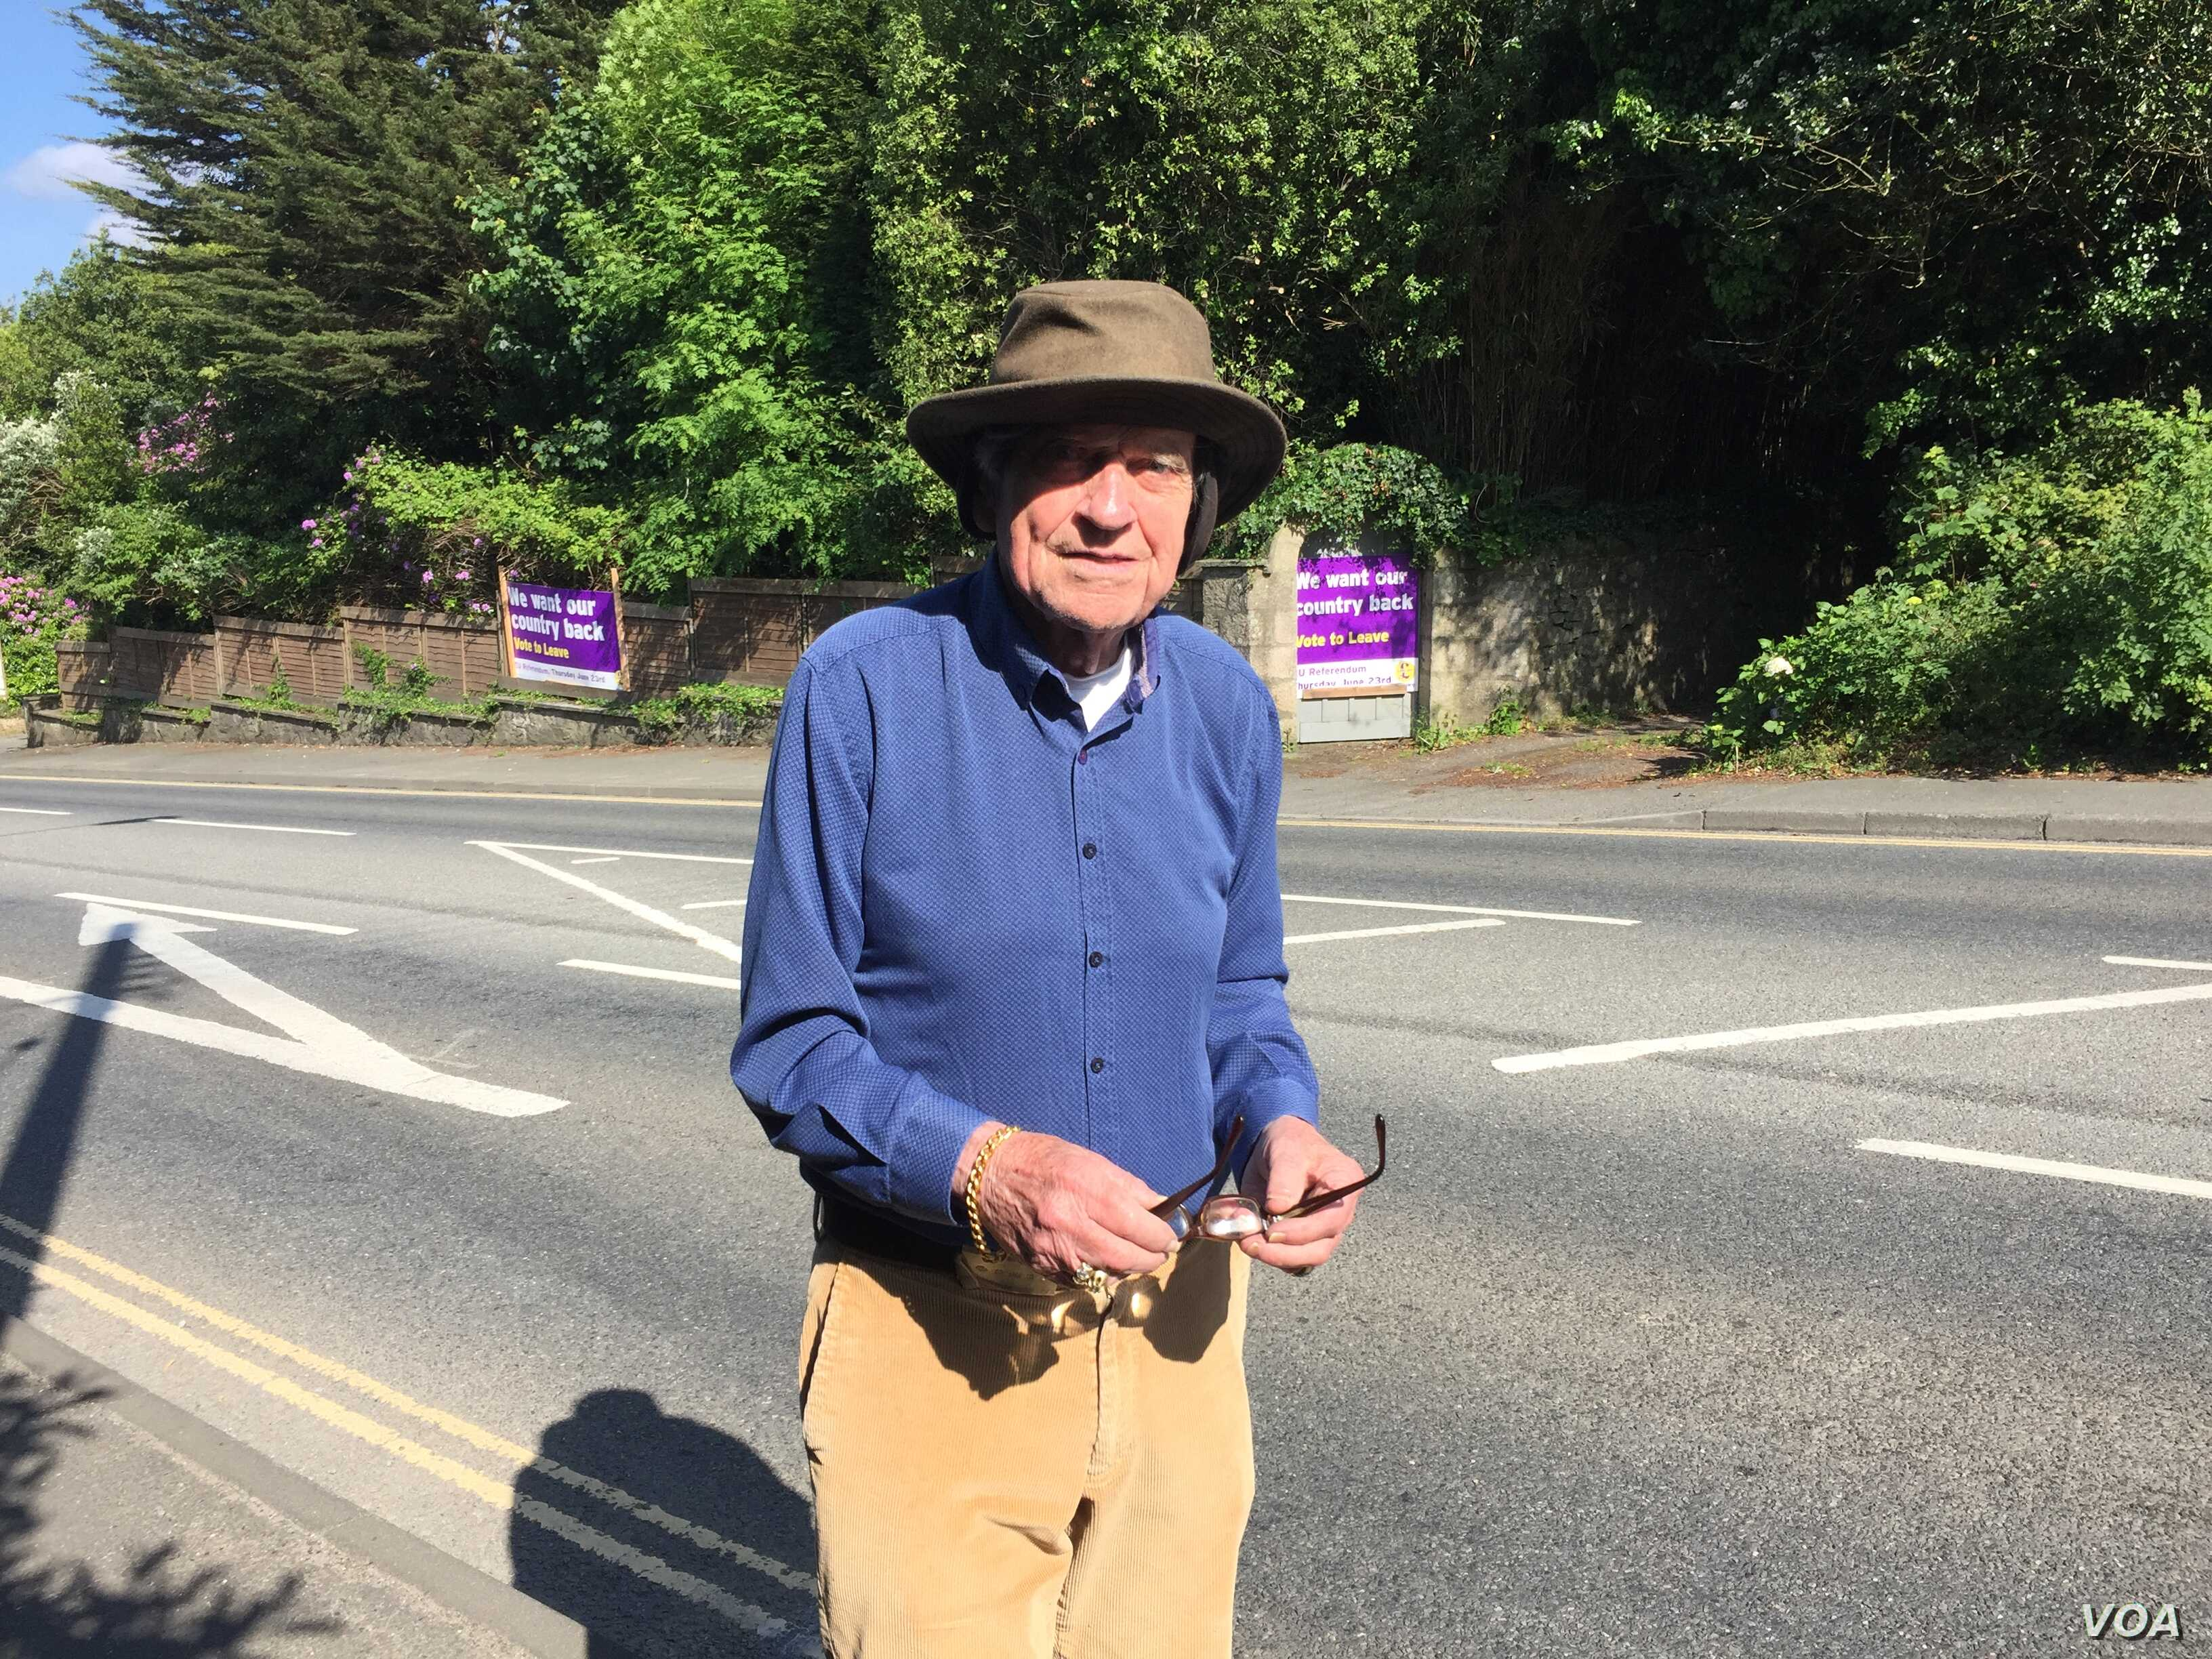 John Hodgson, 78, sees the Brexit vote as a matter of sovereignty. Vivid memories of World War II help shape his view that German influence in the EU is a threat to Britain. (L. Ramirez/VOA)